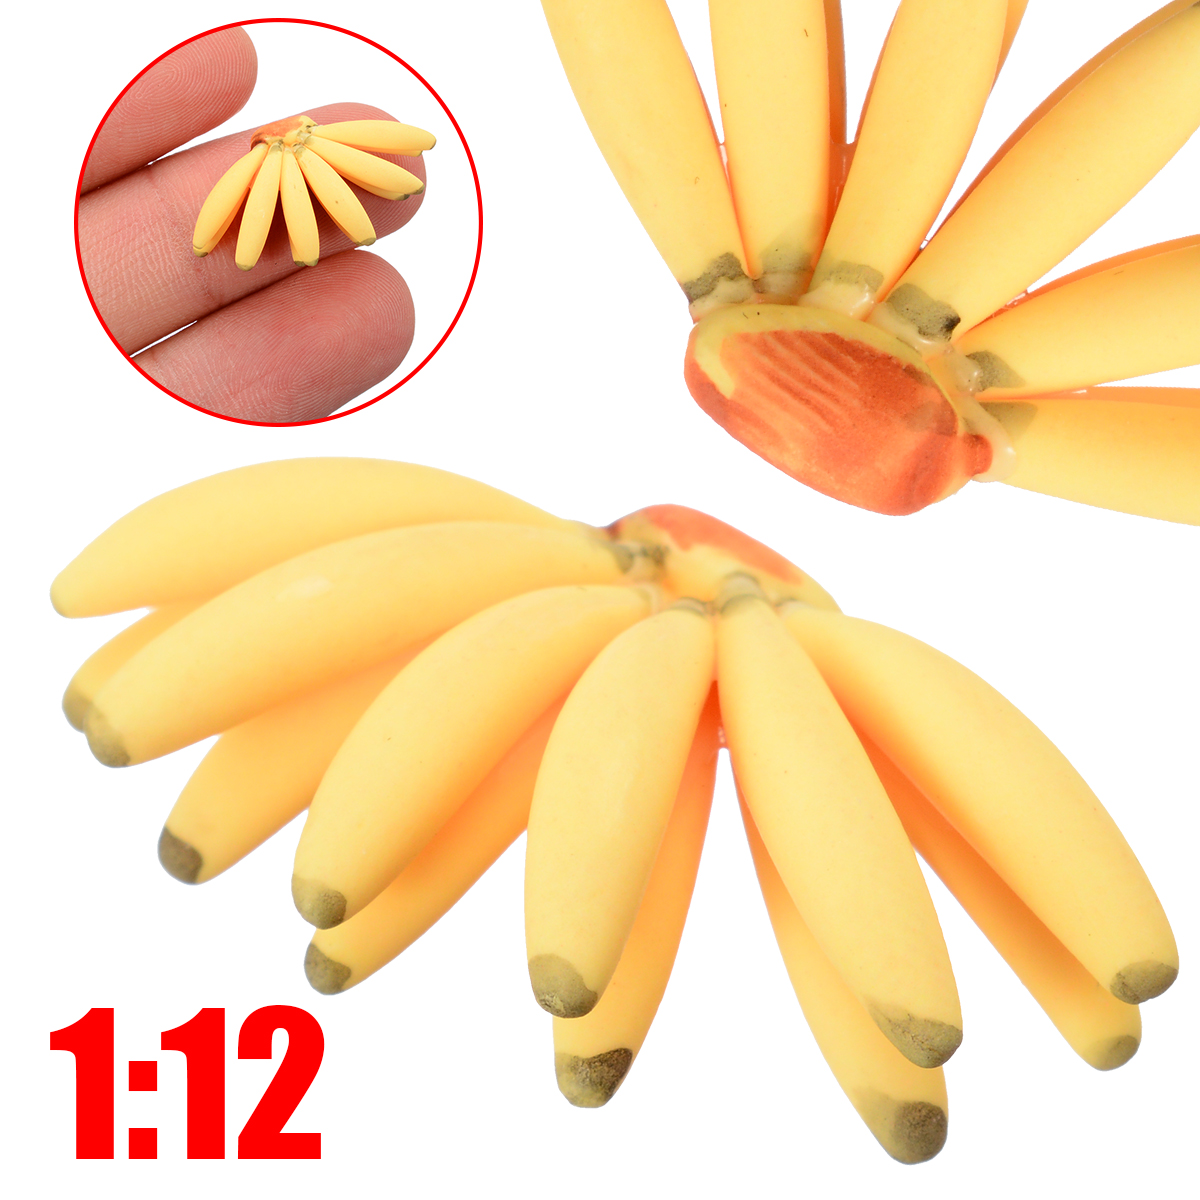 5Pcs/set Miniature Food Fruit Banana For 1:12 Dollhouse Miniature Bunch Of Banana Kitchen Food Fruit Accessories Decor